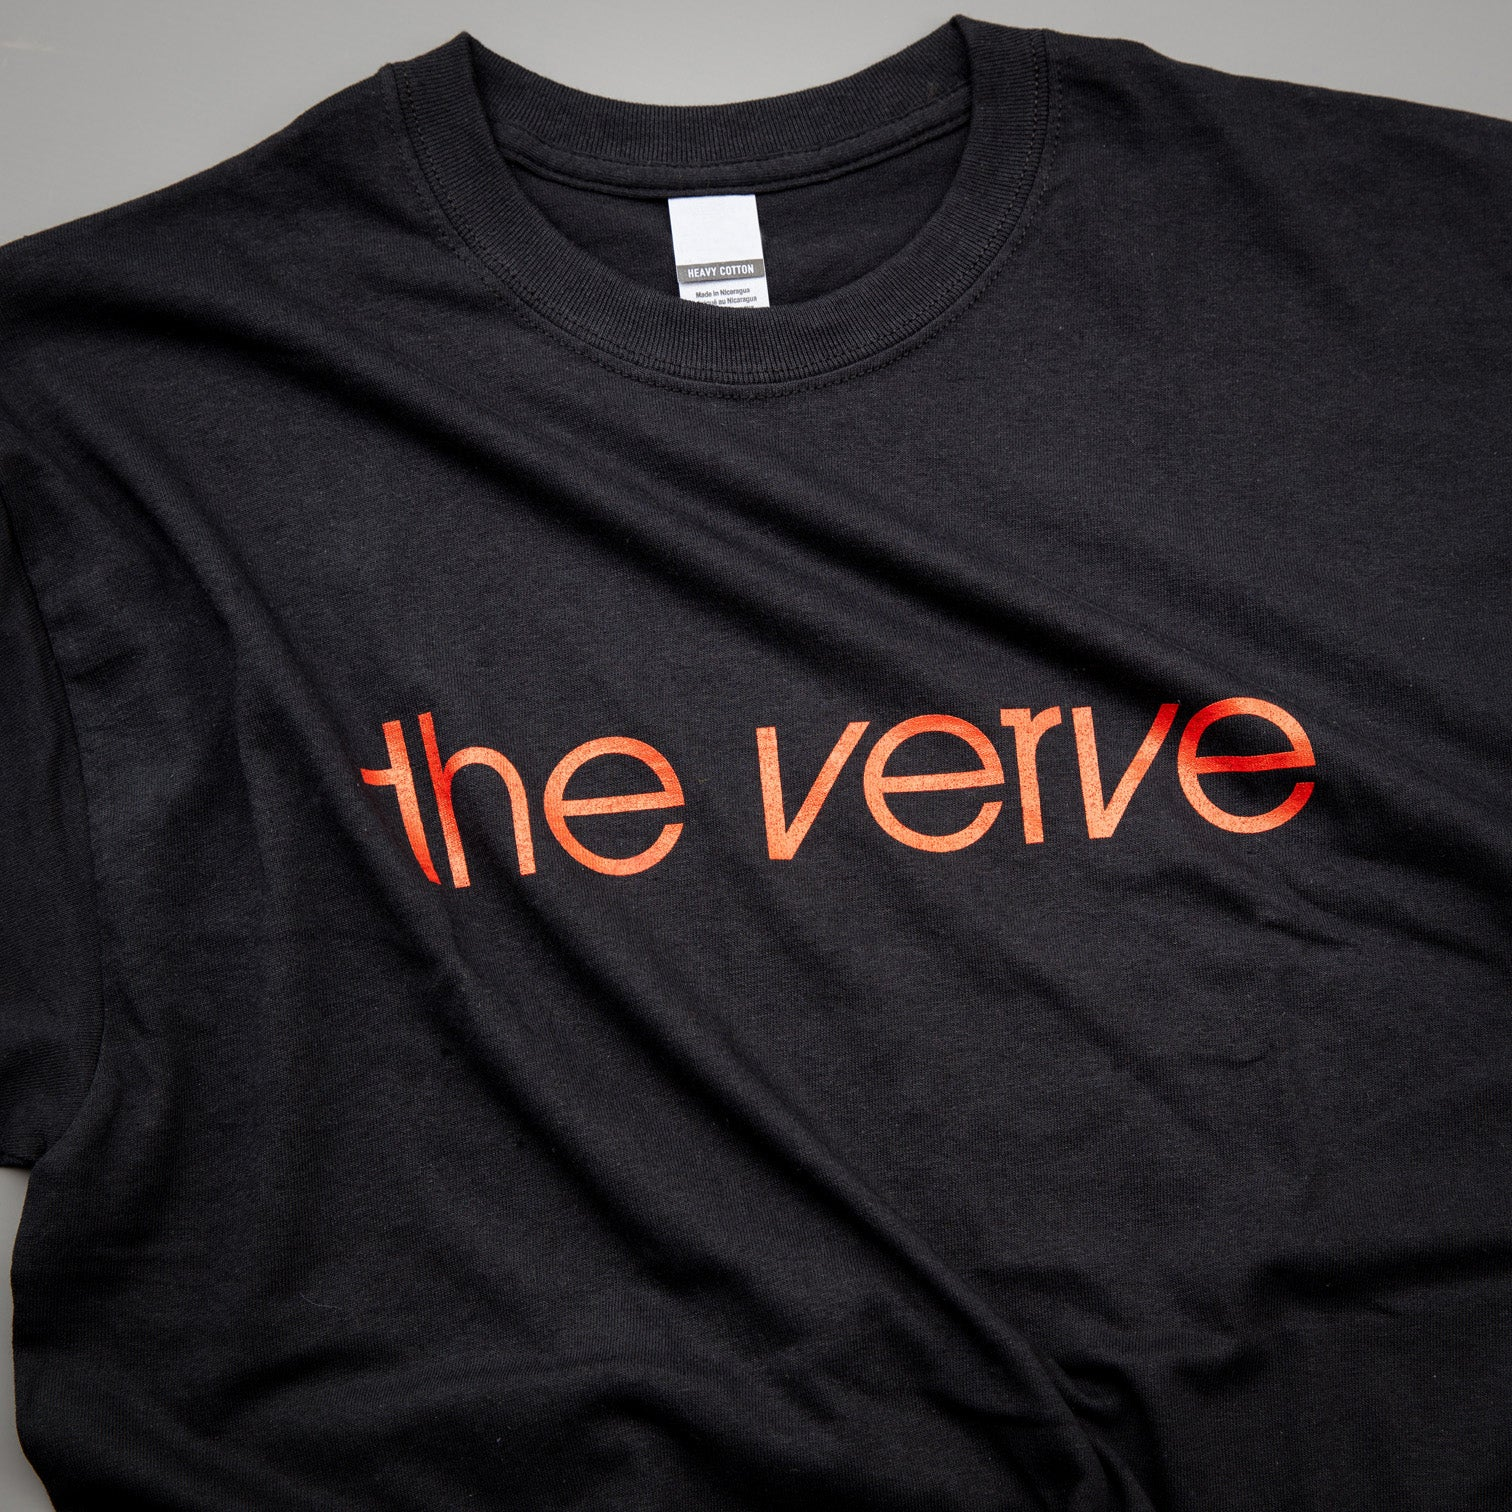 The Verve - Classic Logo T Shirt - 5 Colours